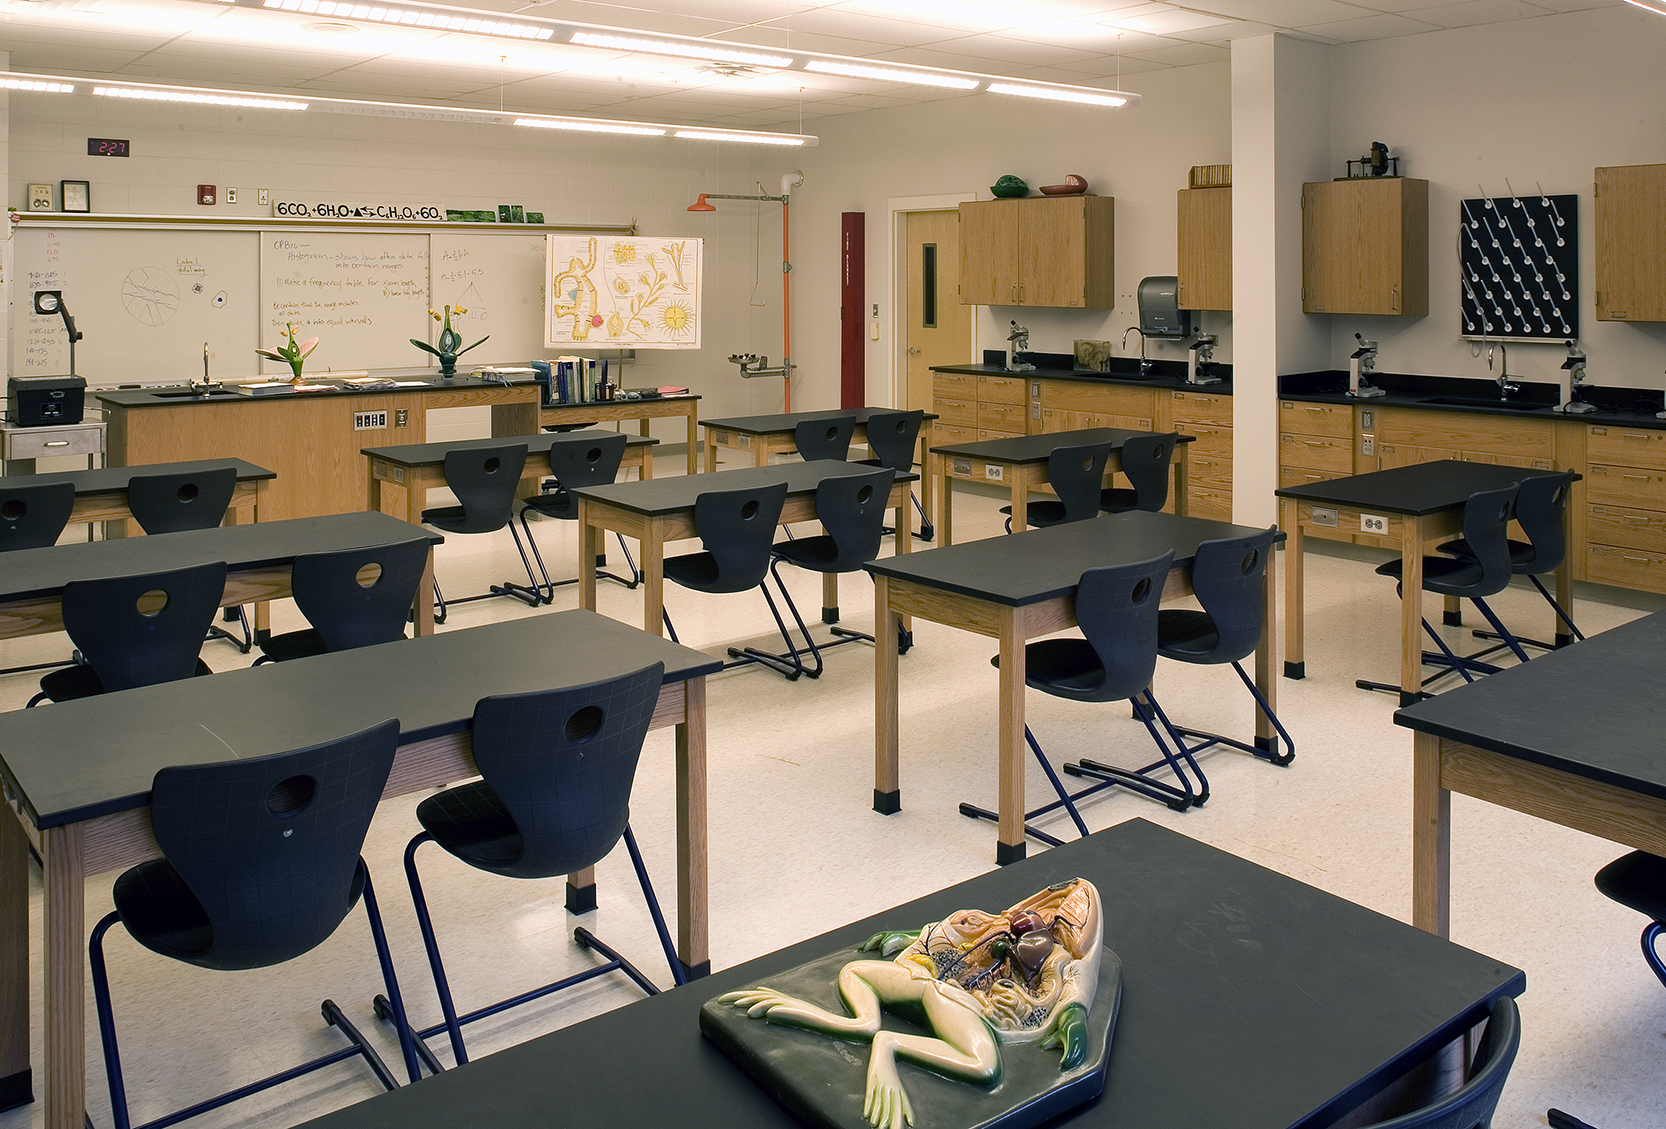 Chemistry classrooms feature eye-washing stations and flexible furniture that can be regrouped as needed.